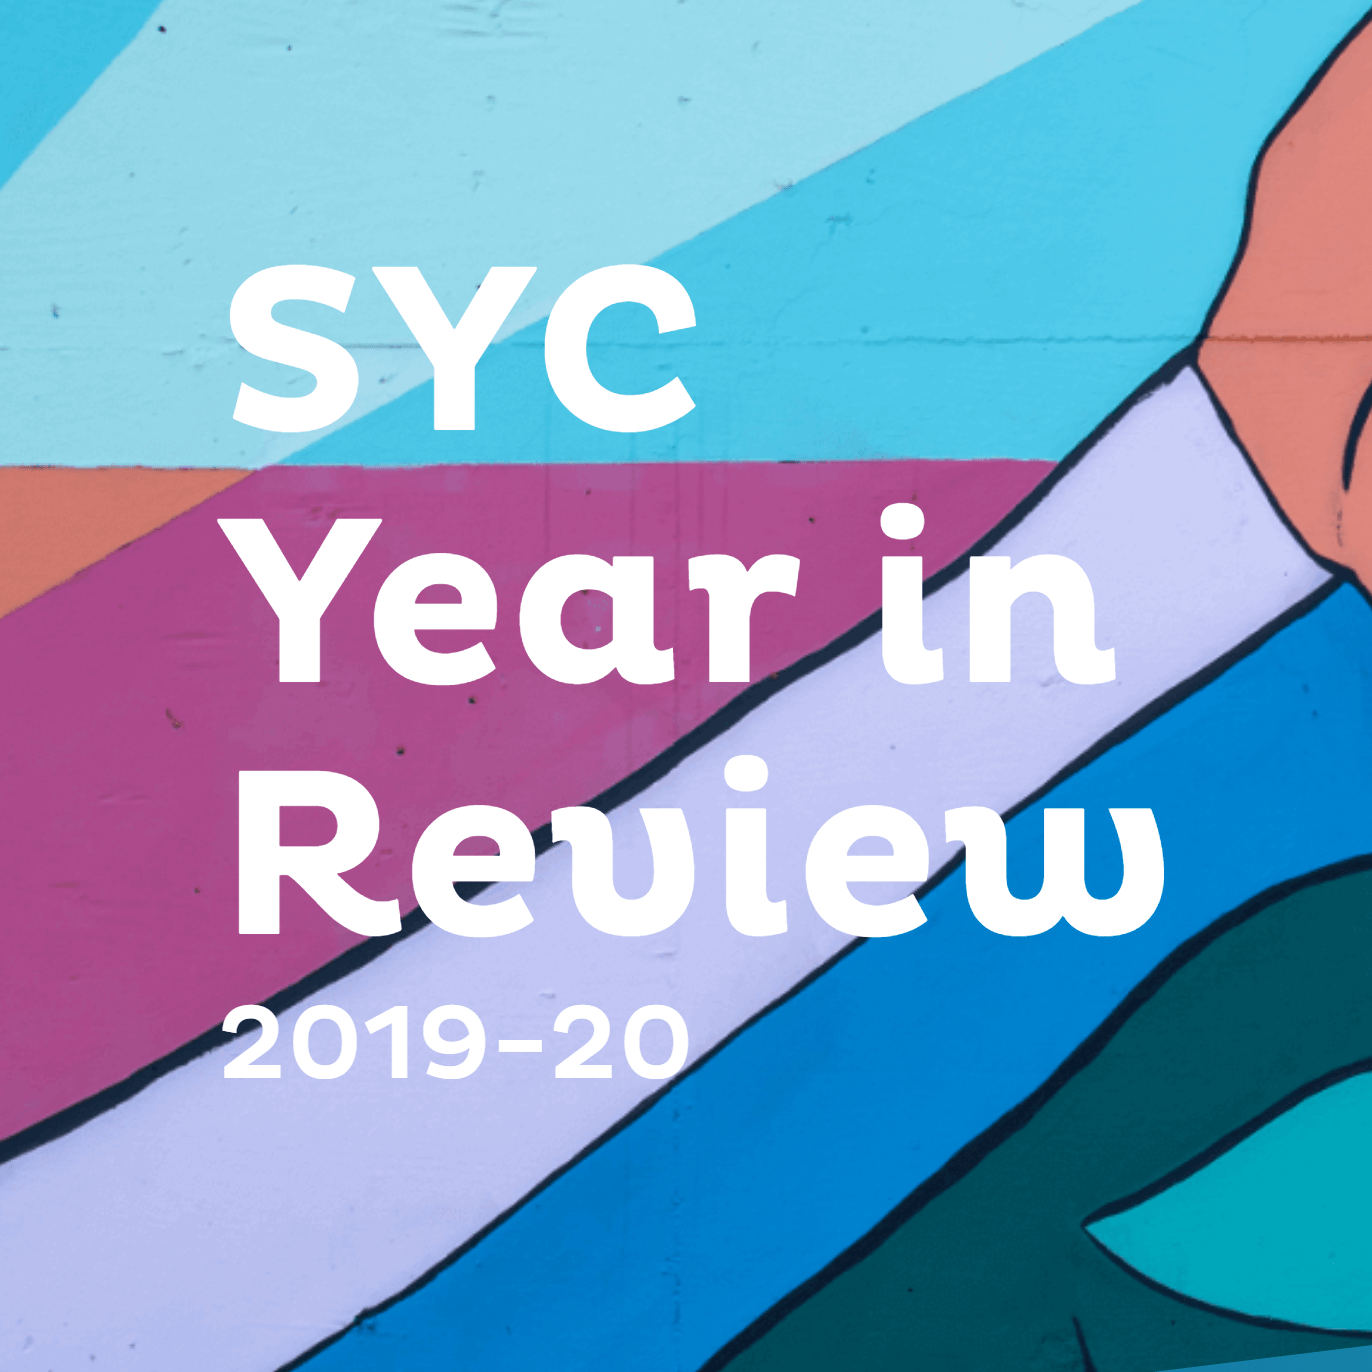 SYC Year in Review 2019-20